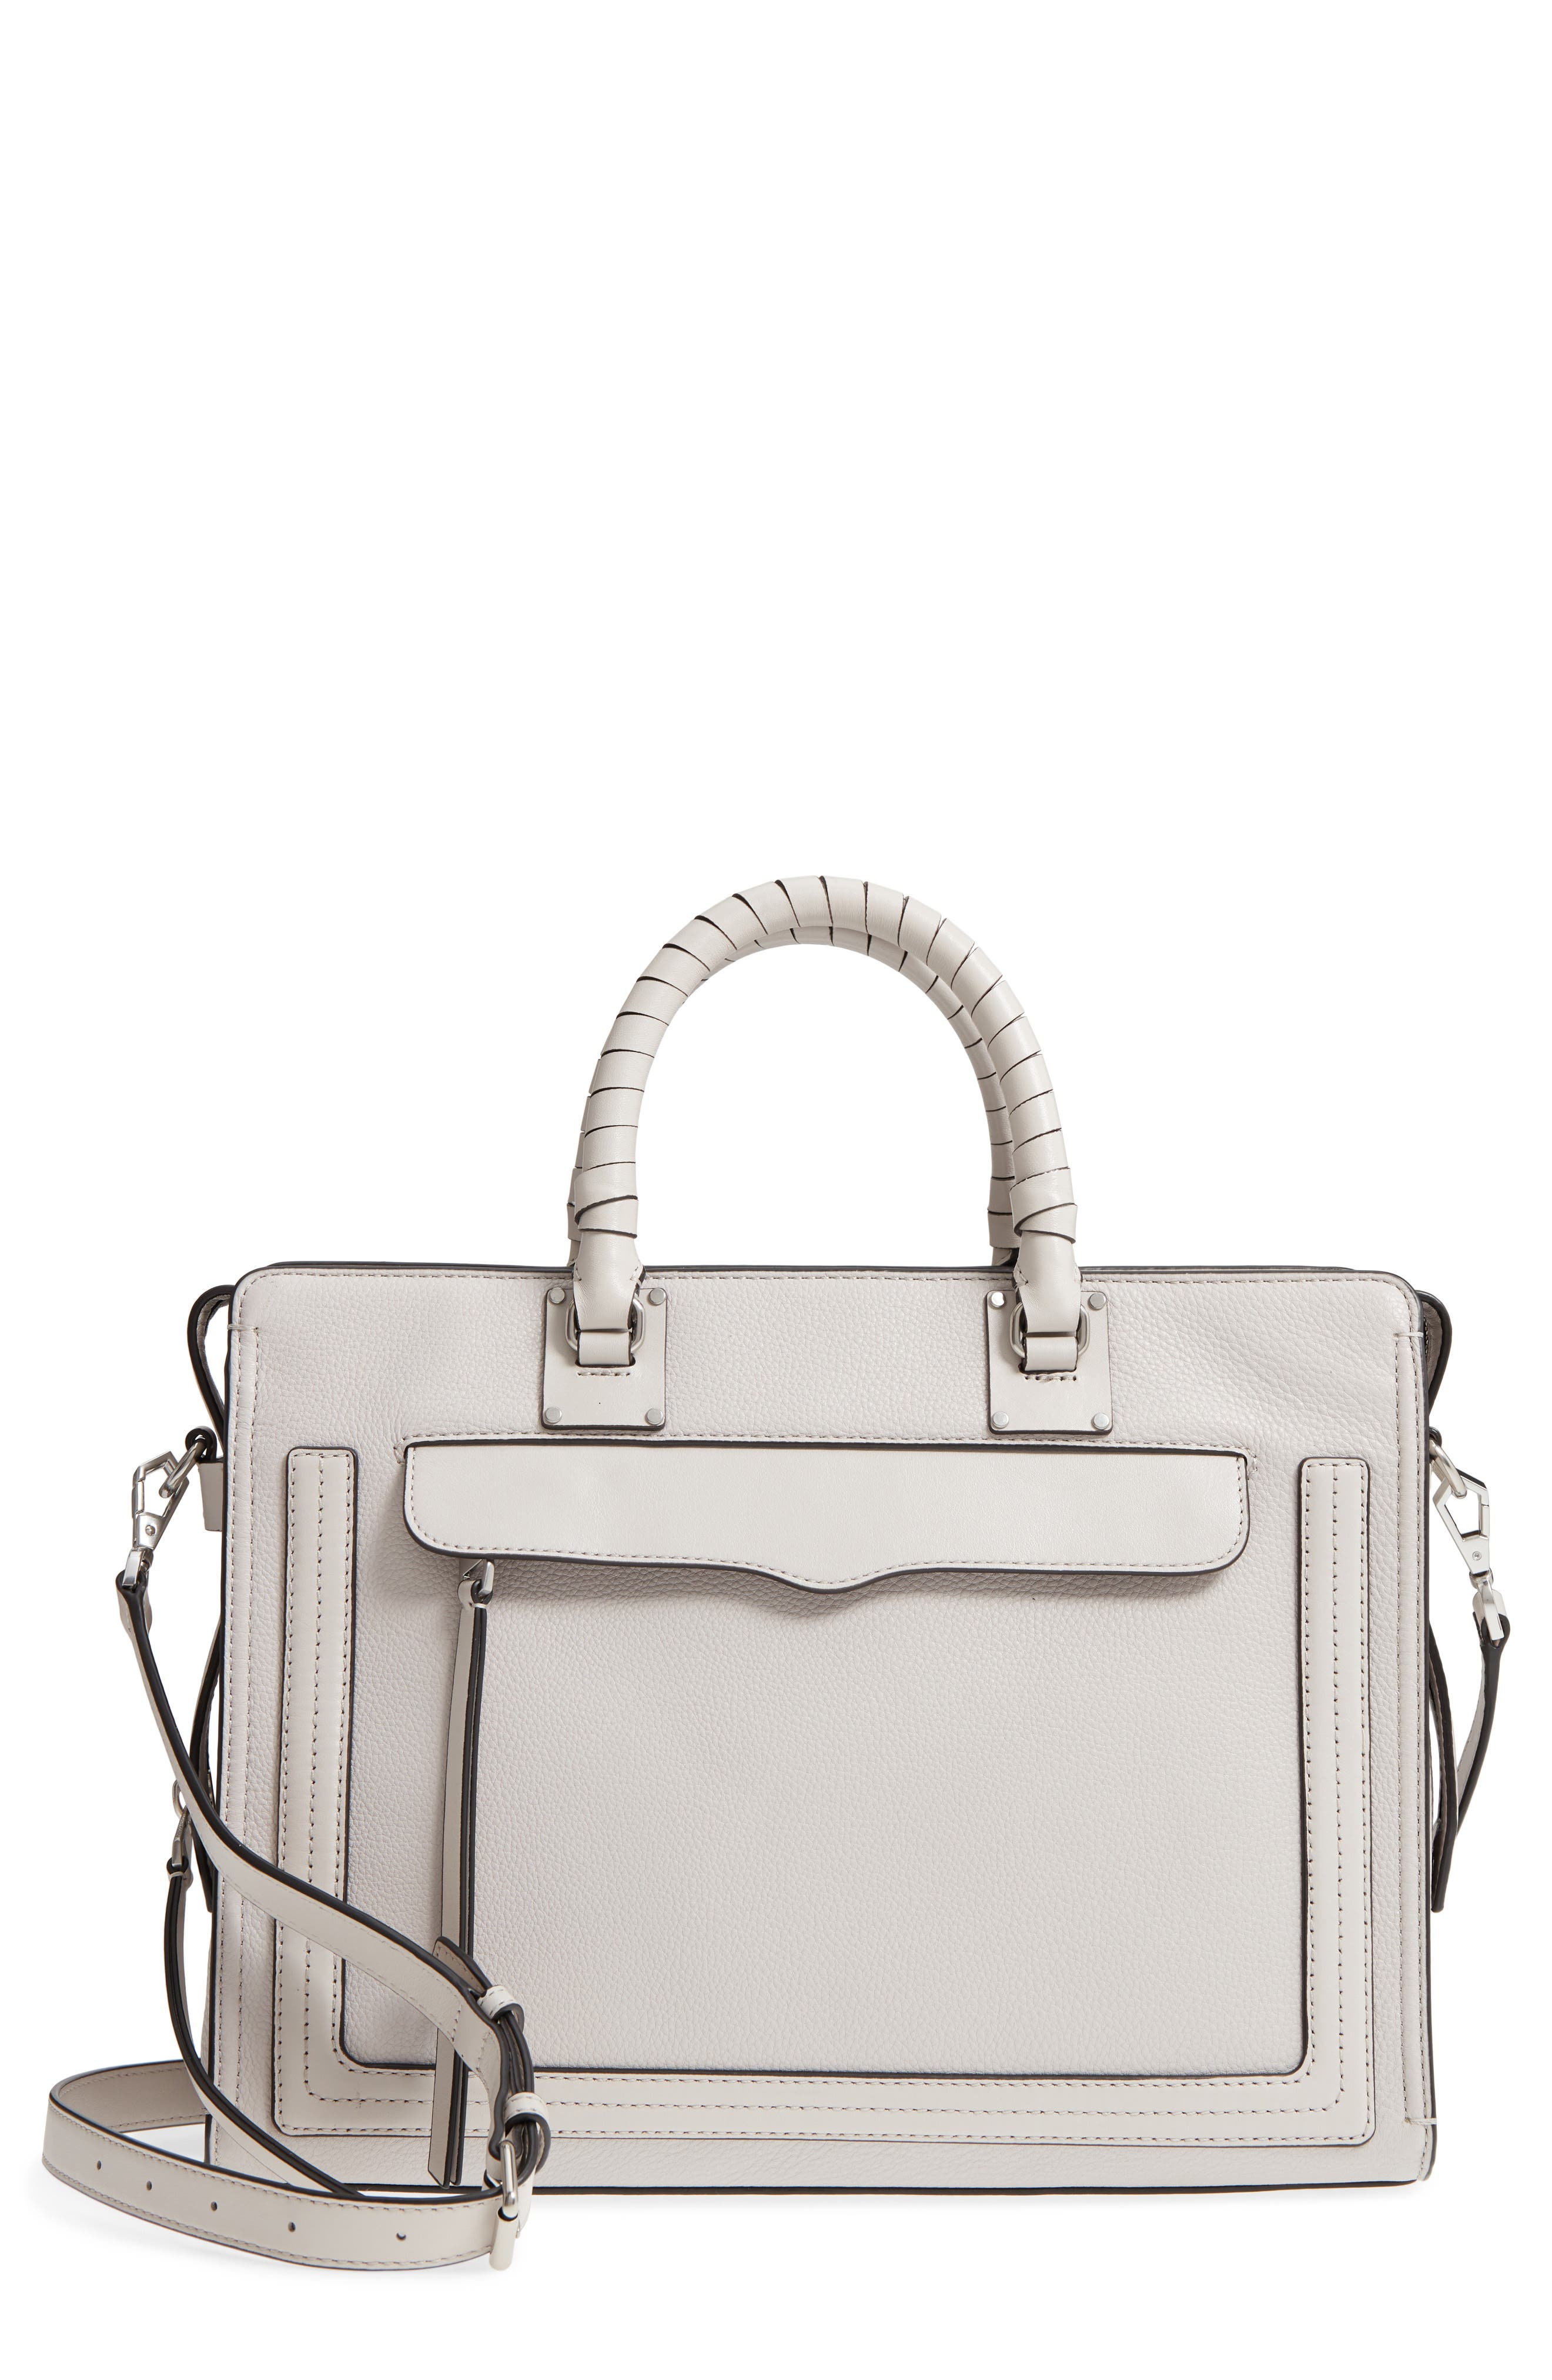 Rebecca Minkoff Large Bree Leather Satchel